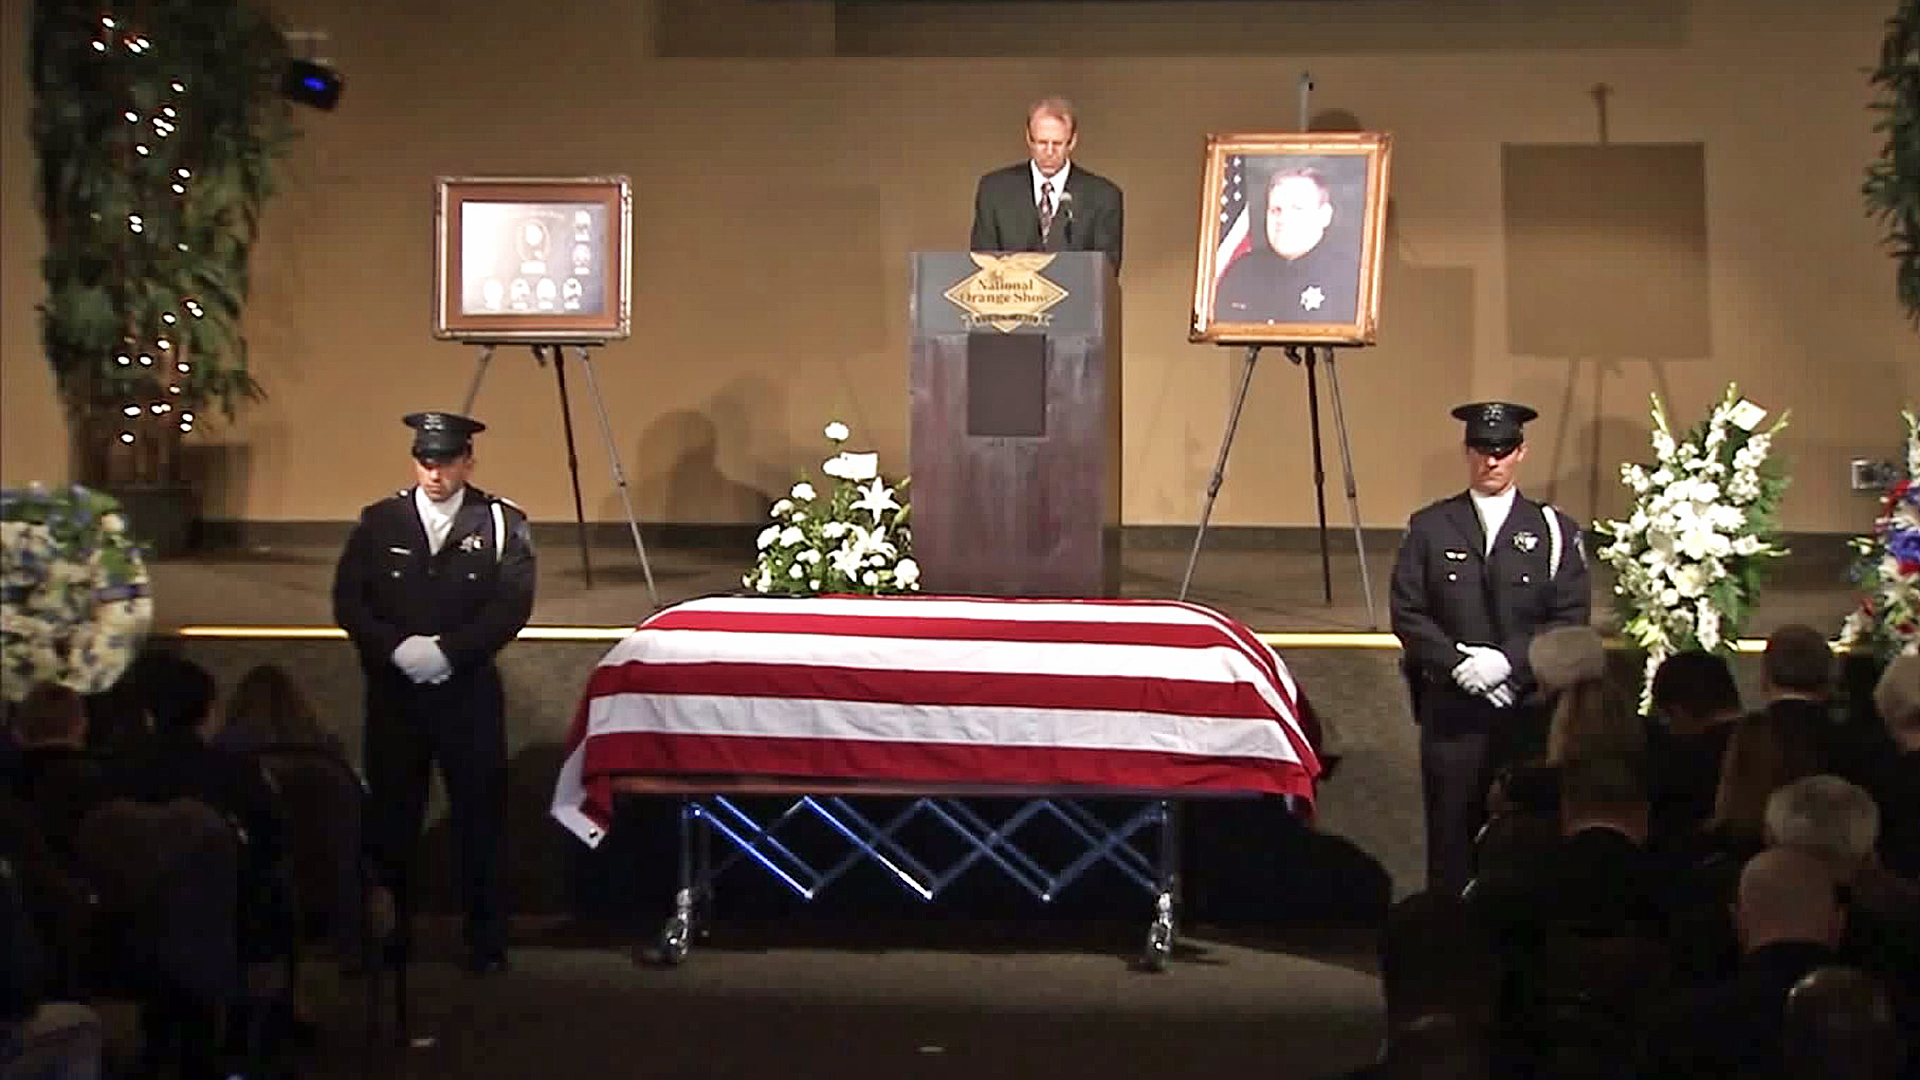 A funeral service was held for Officer Bryce Hanes on Nov. 12, 2015. (Credit: Pool)